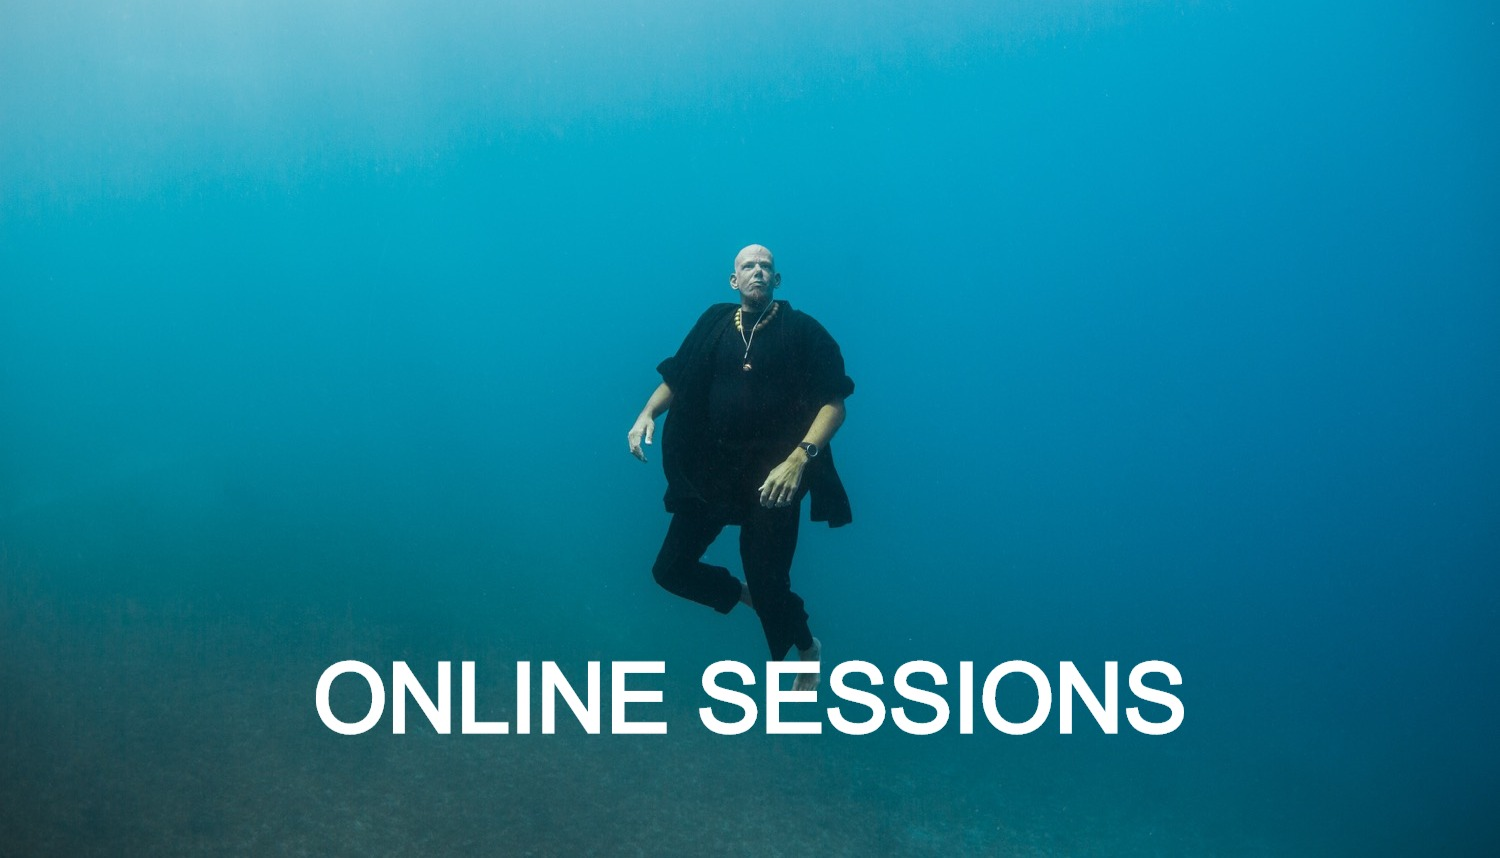 online sessions with the zen monk Kosho Loic Vuillemin